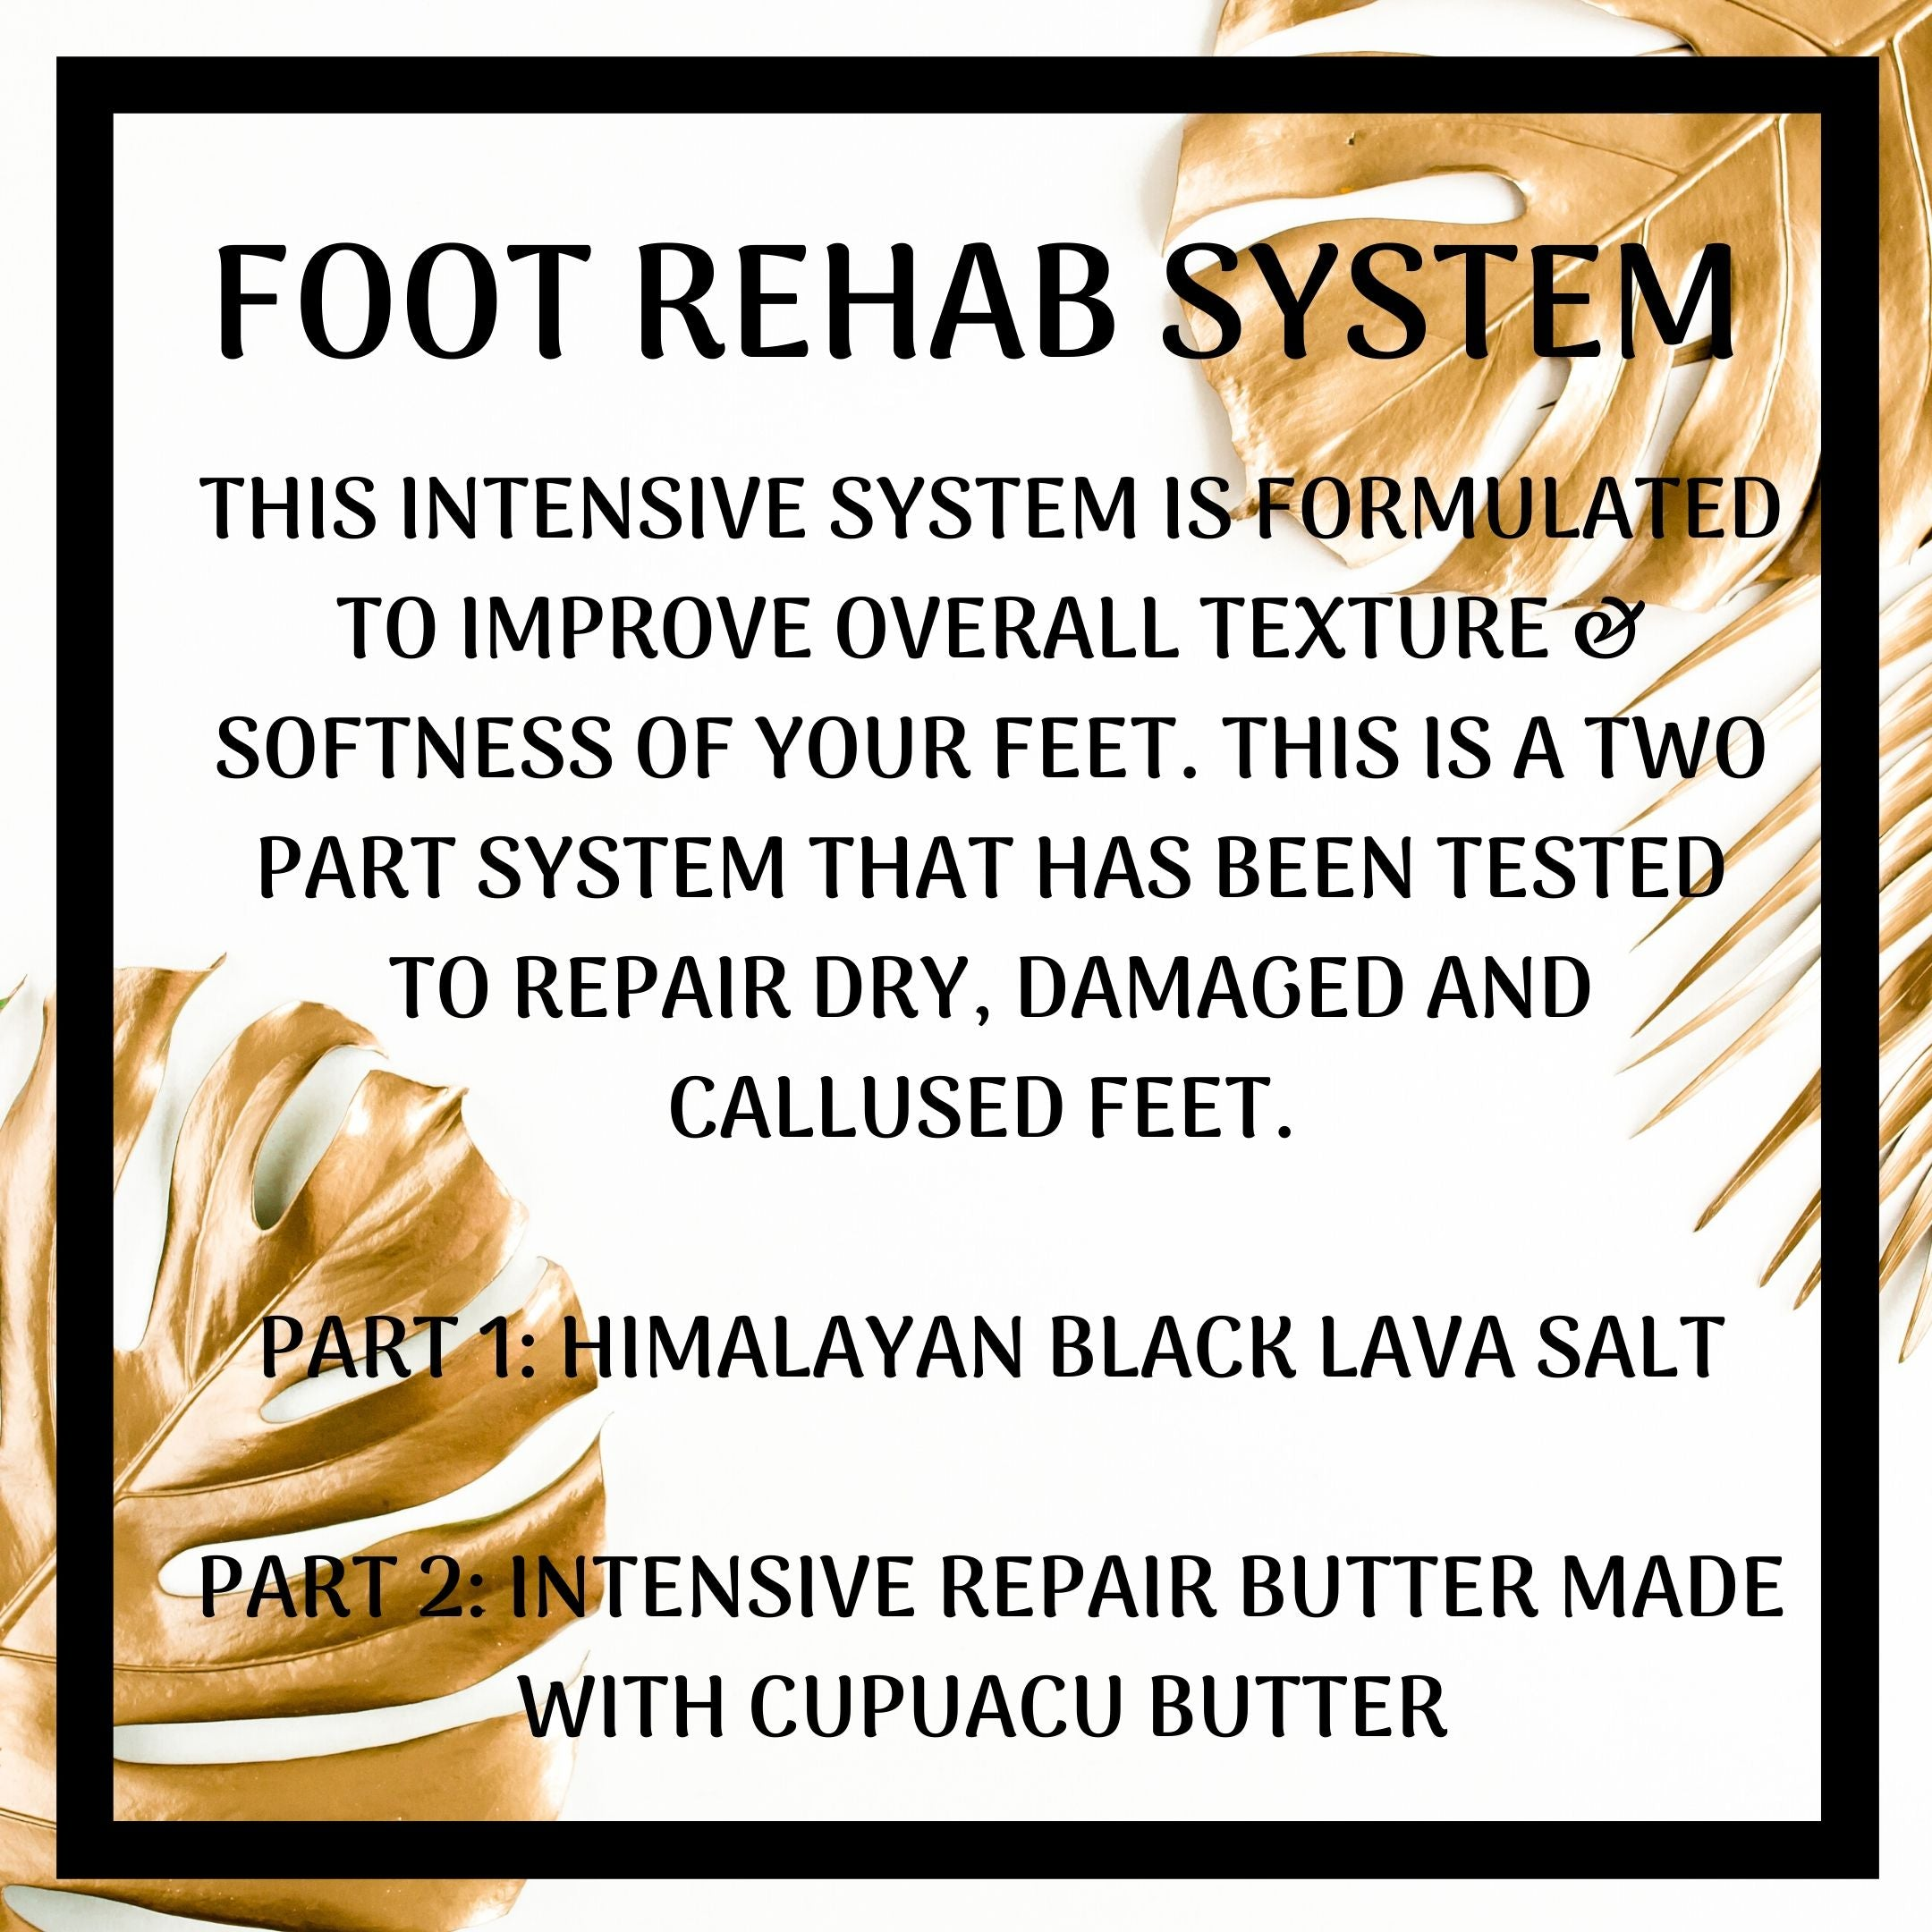 Foot Rehab System